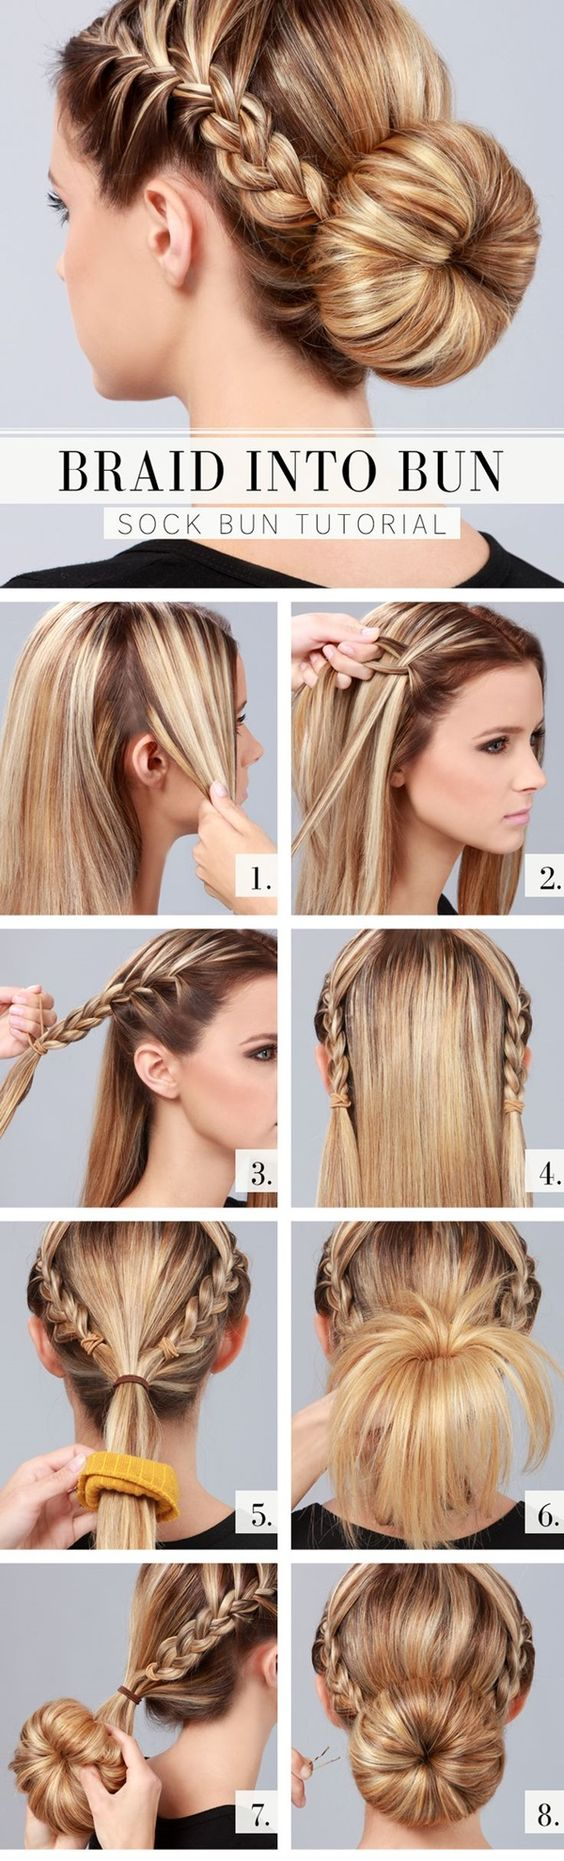 DIY Wedding Hairstyles to Try on Your Own